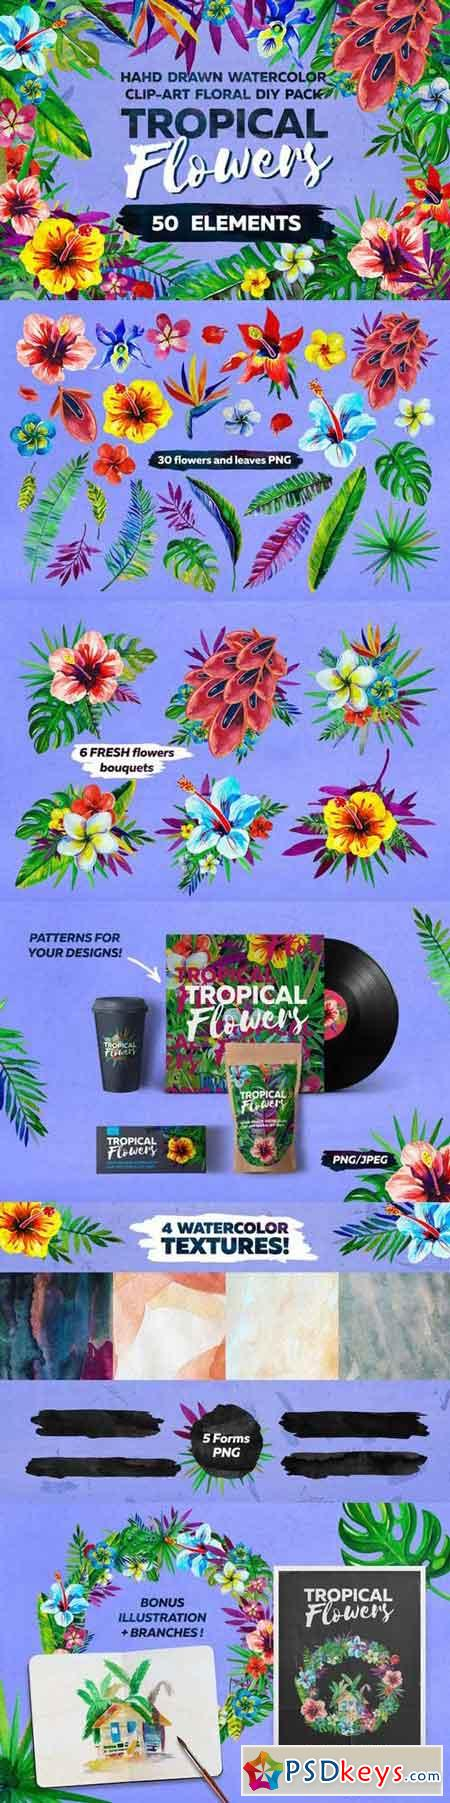 Watercolor Tropical Flowers 699683